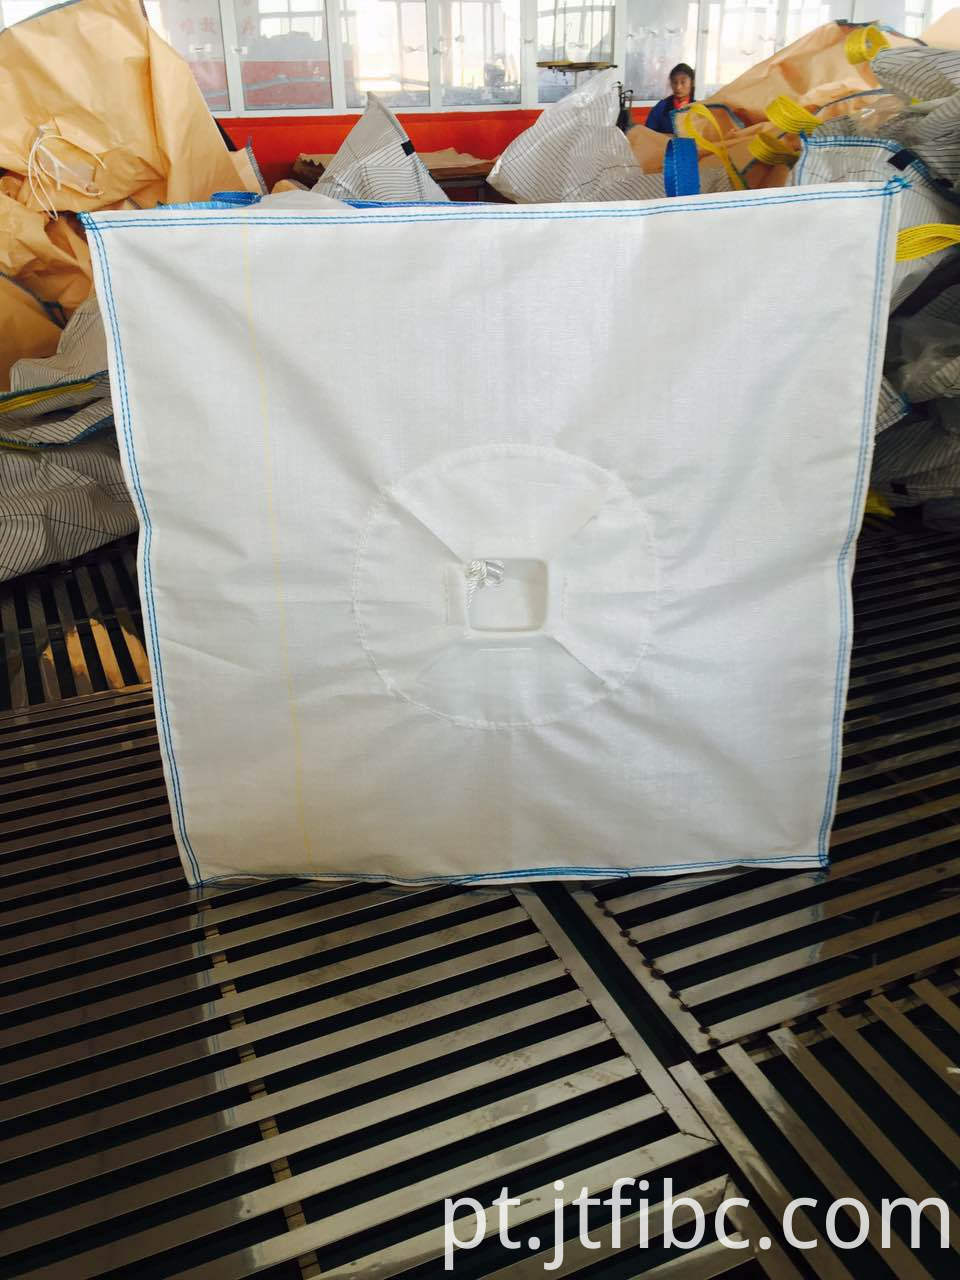 1 Ton Fibc Bag